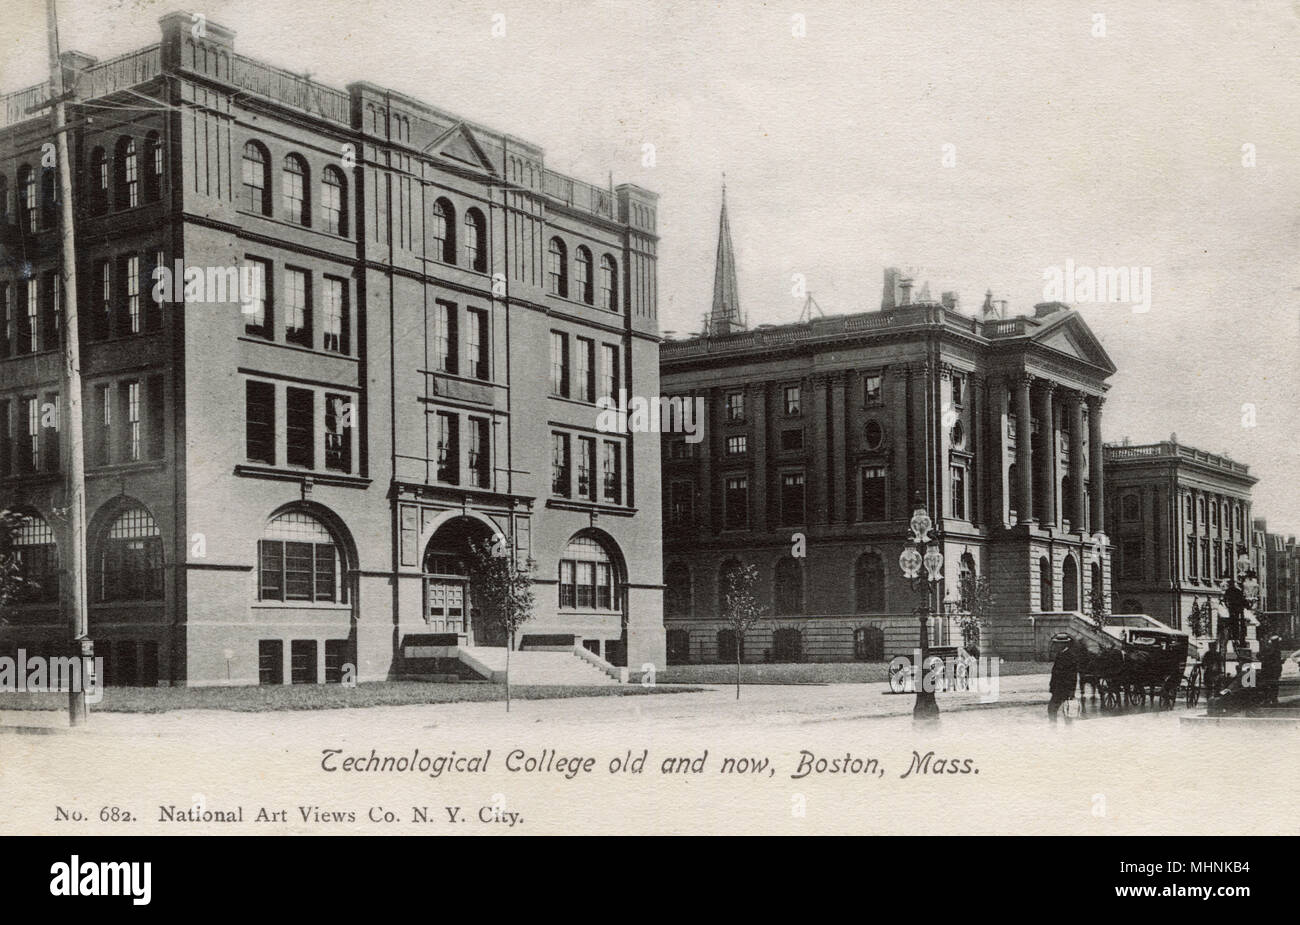 Technological College - Old and New - Boston, Massachusetts     Date: 1903 - Stock Image